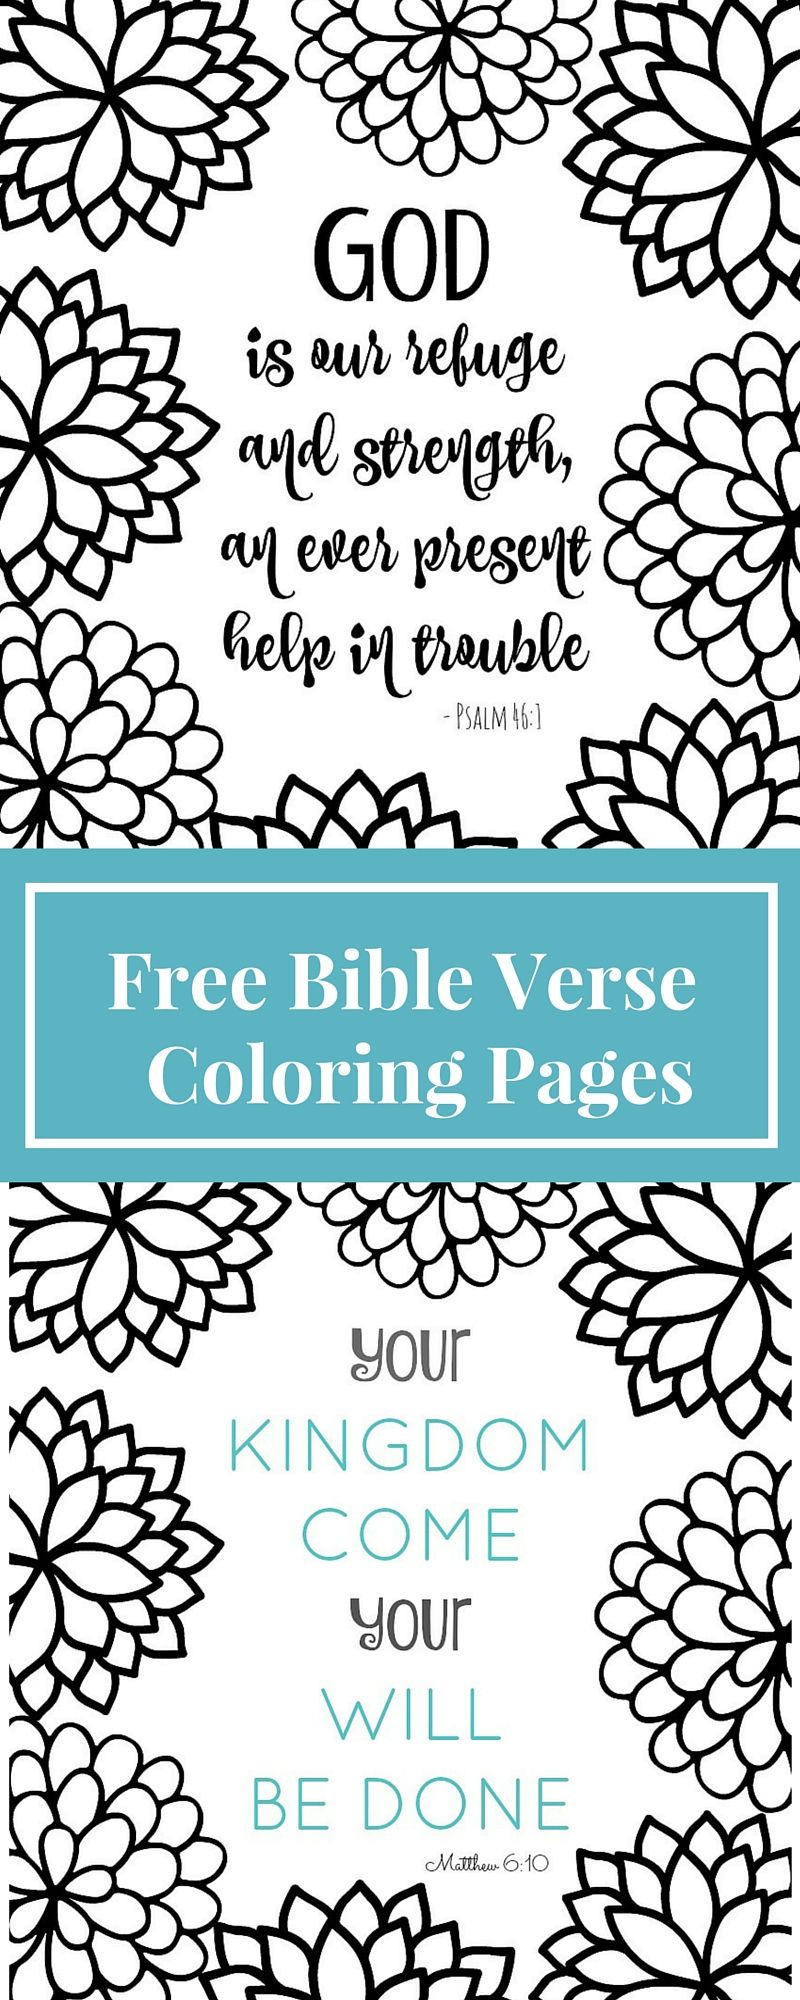 Free printable coloring pages with words - Free Printable Bible Verse Coloring Pages With Bursting Blossoms